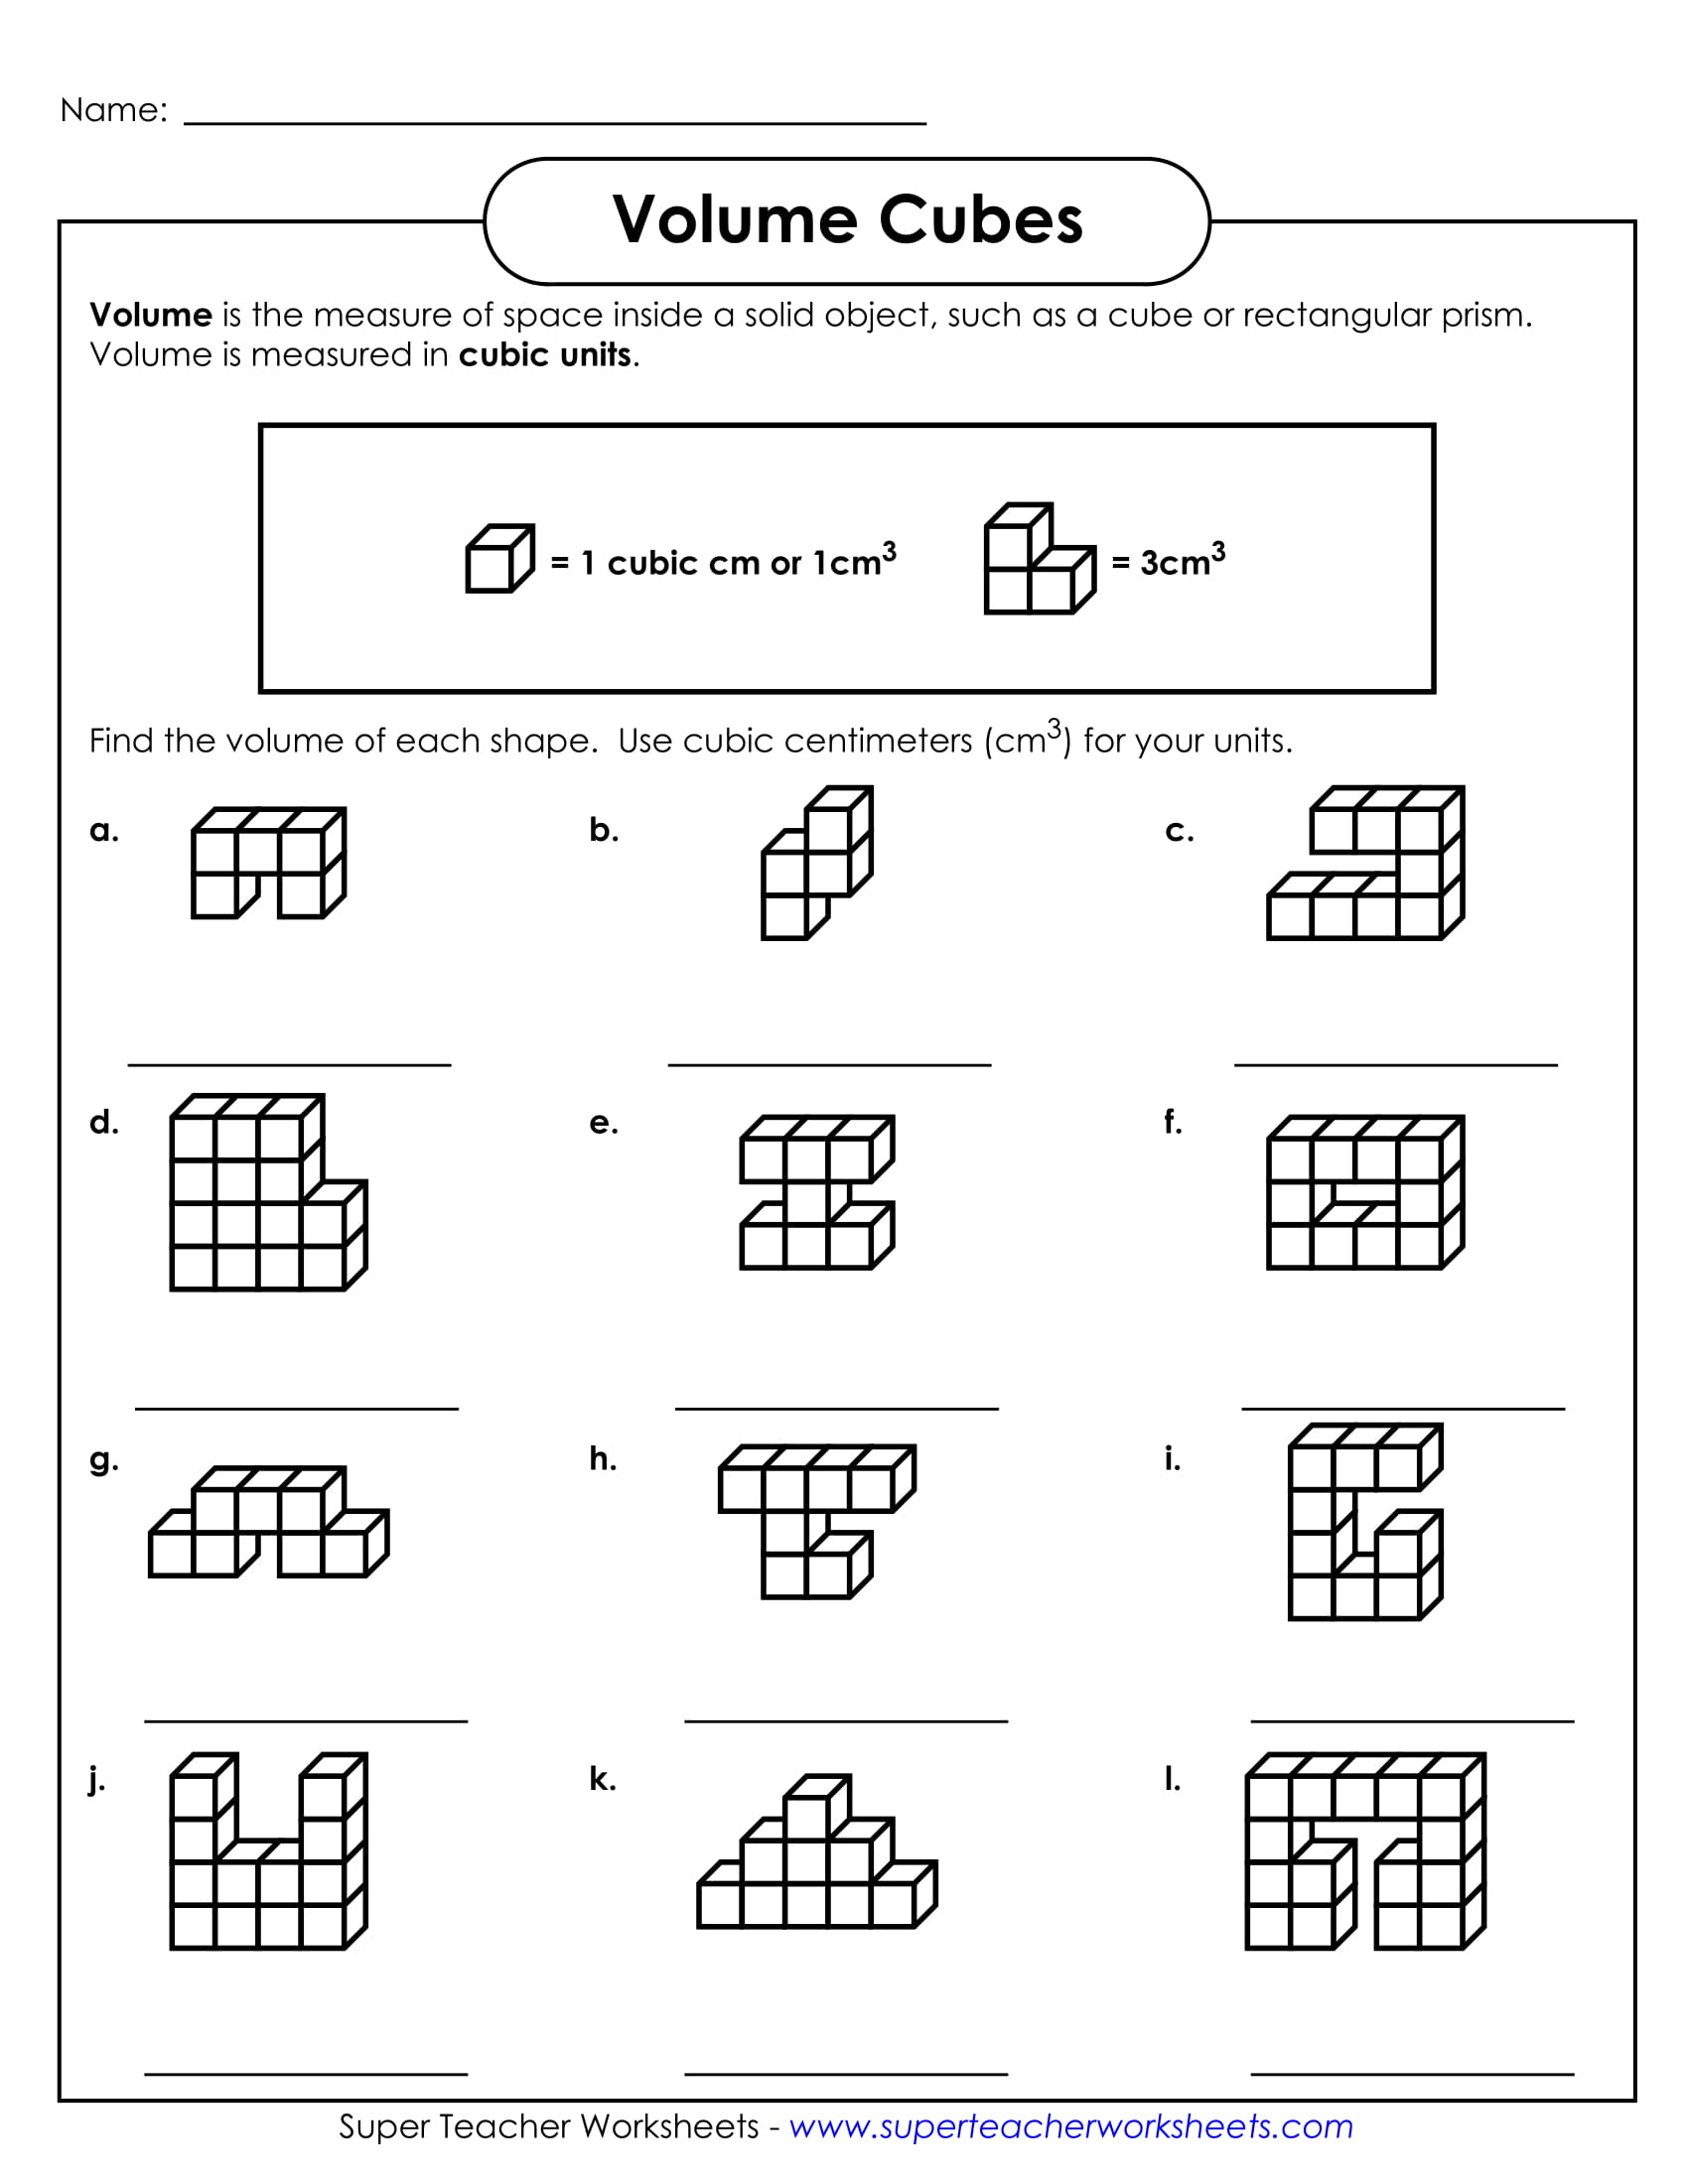 Worksheets Volume Cubes Worksheet 9 geometry worksheet examples for students pdf volume cubes sample example